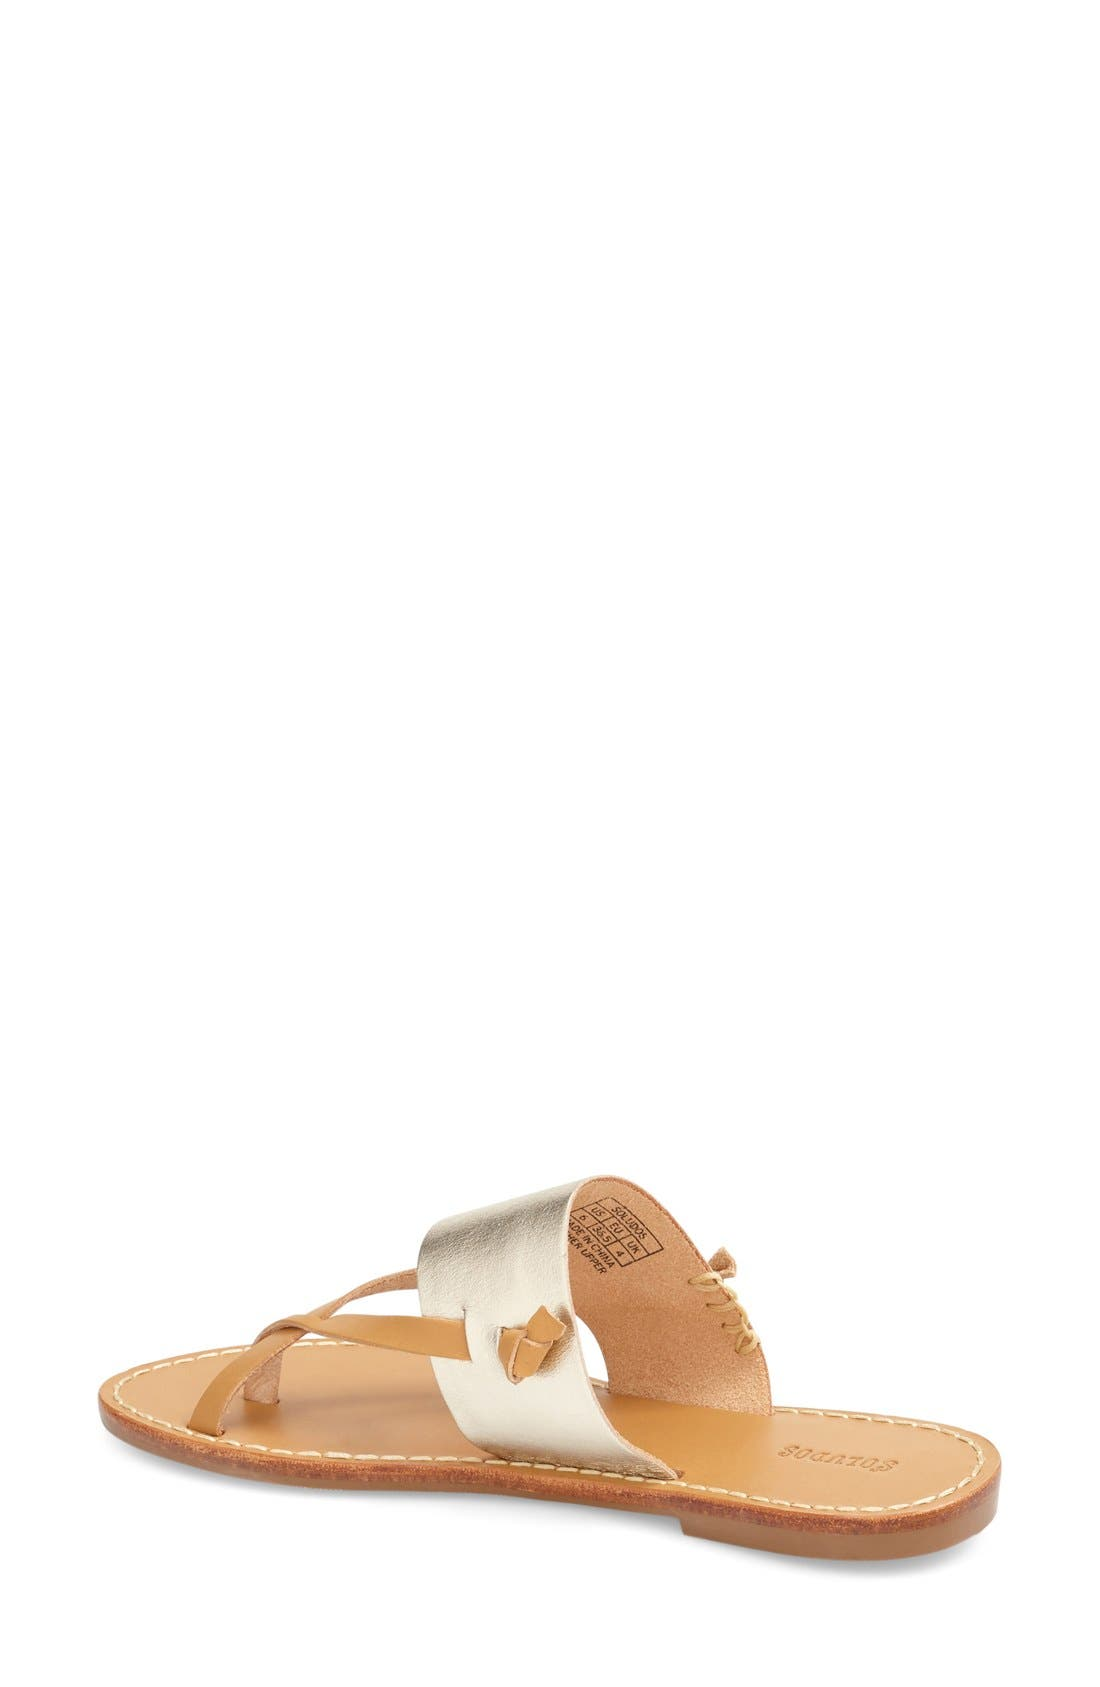 'Slotted' Thong Sandal,                             Alternate thumbnail 2, color,                             METALLIC/ PLATINUM LEATHER